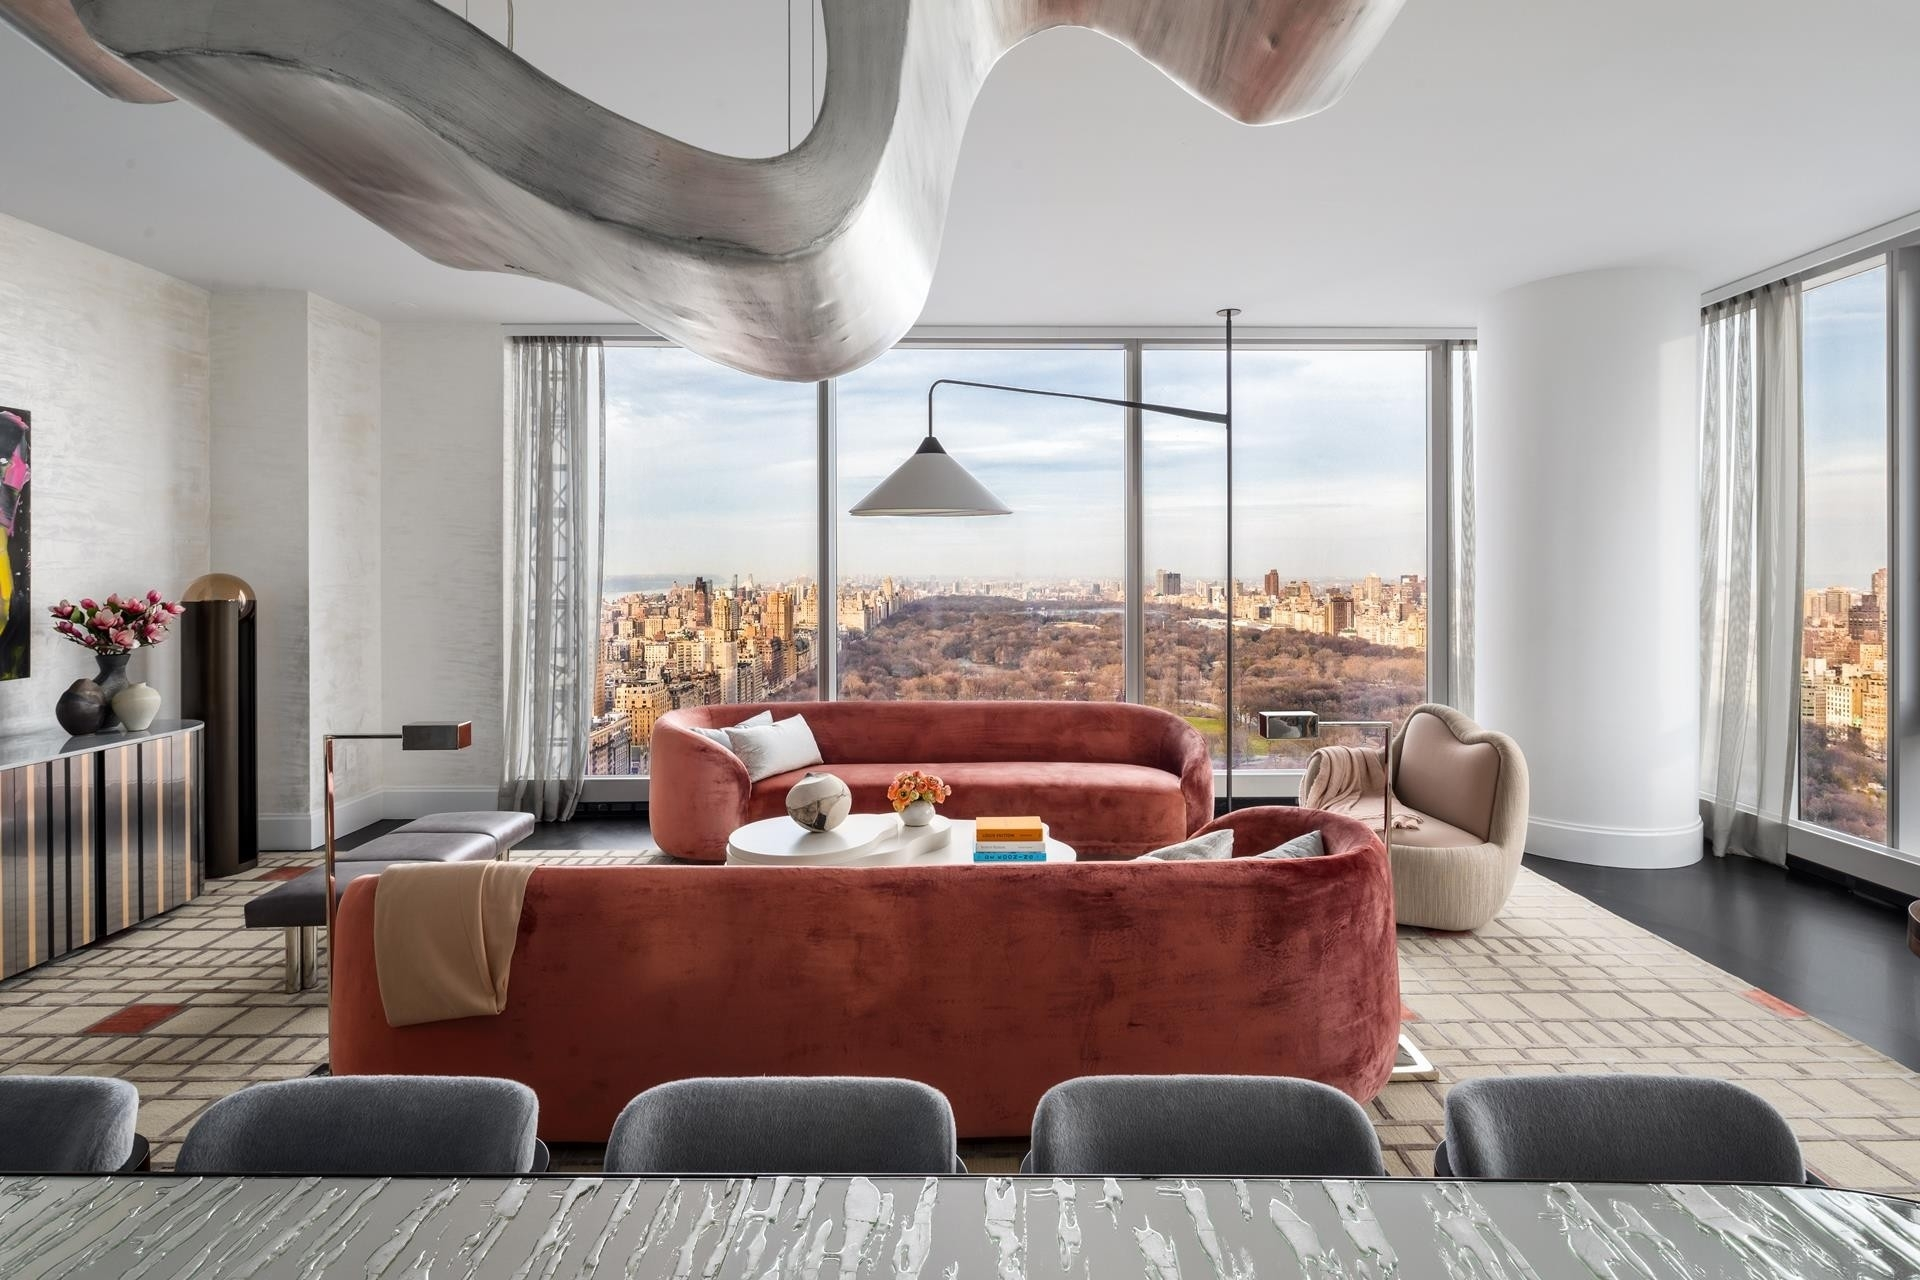 Condominium for Sale at Central Park Tower, 217 West 57th St, 47C Midtown West, New York, NY 10019